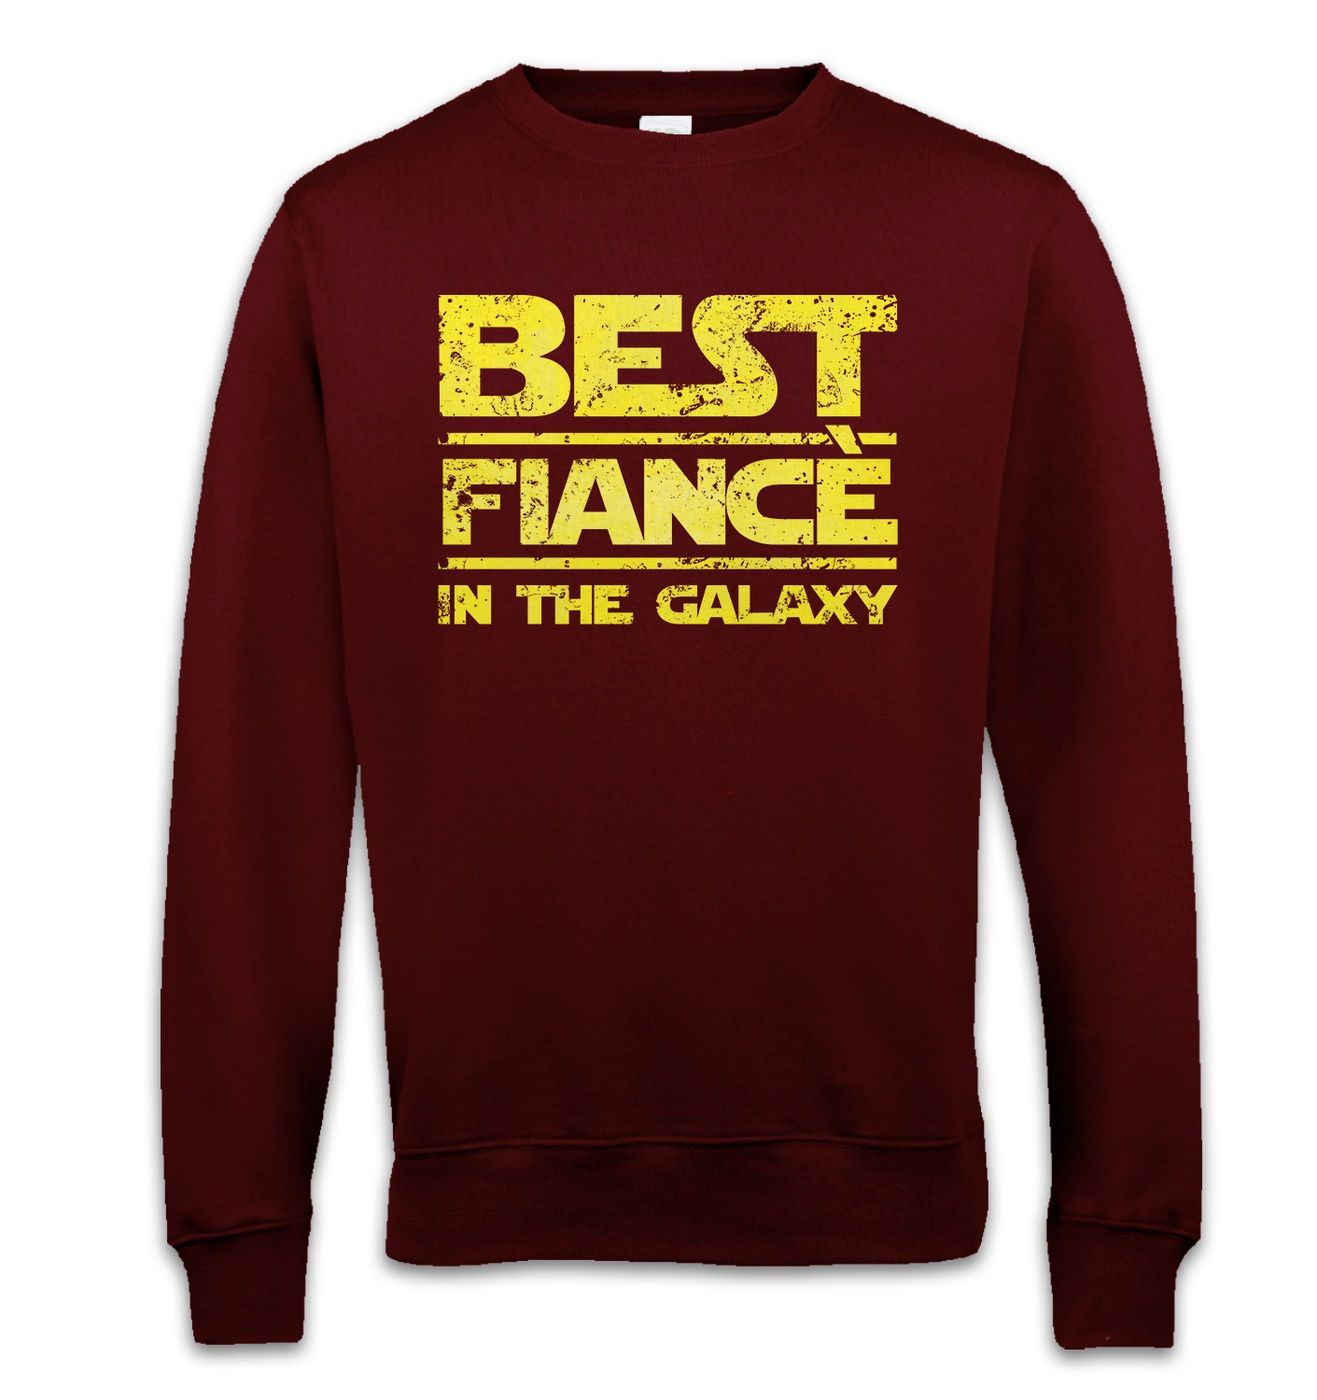 Best Fiance In The Galaxy sweatshirt by Something Geeky